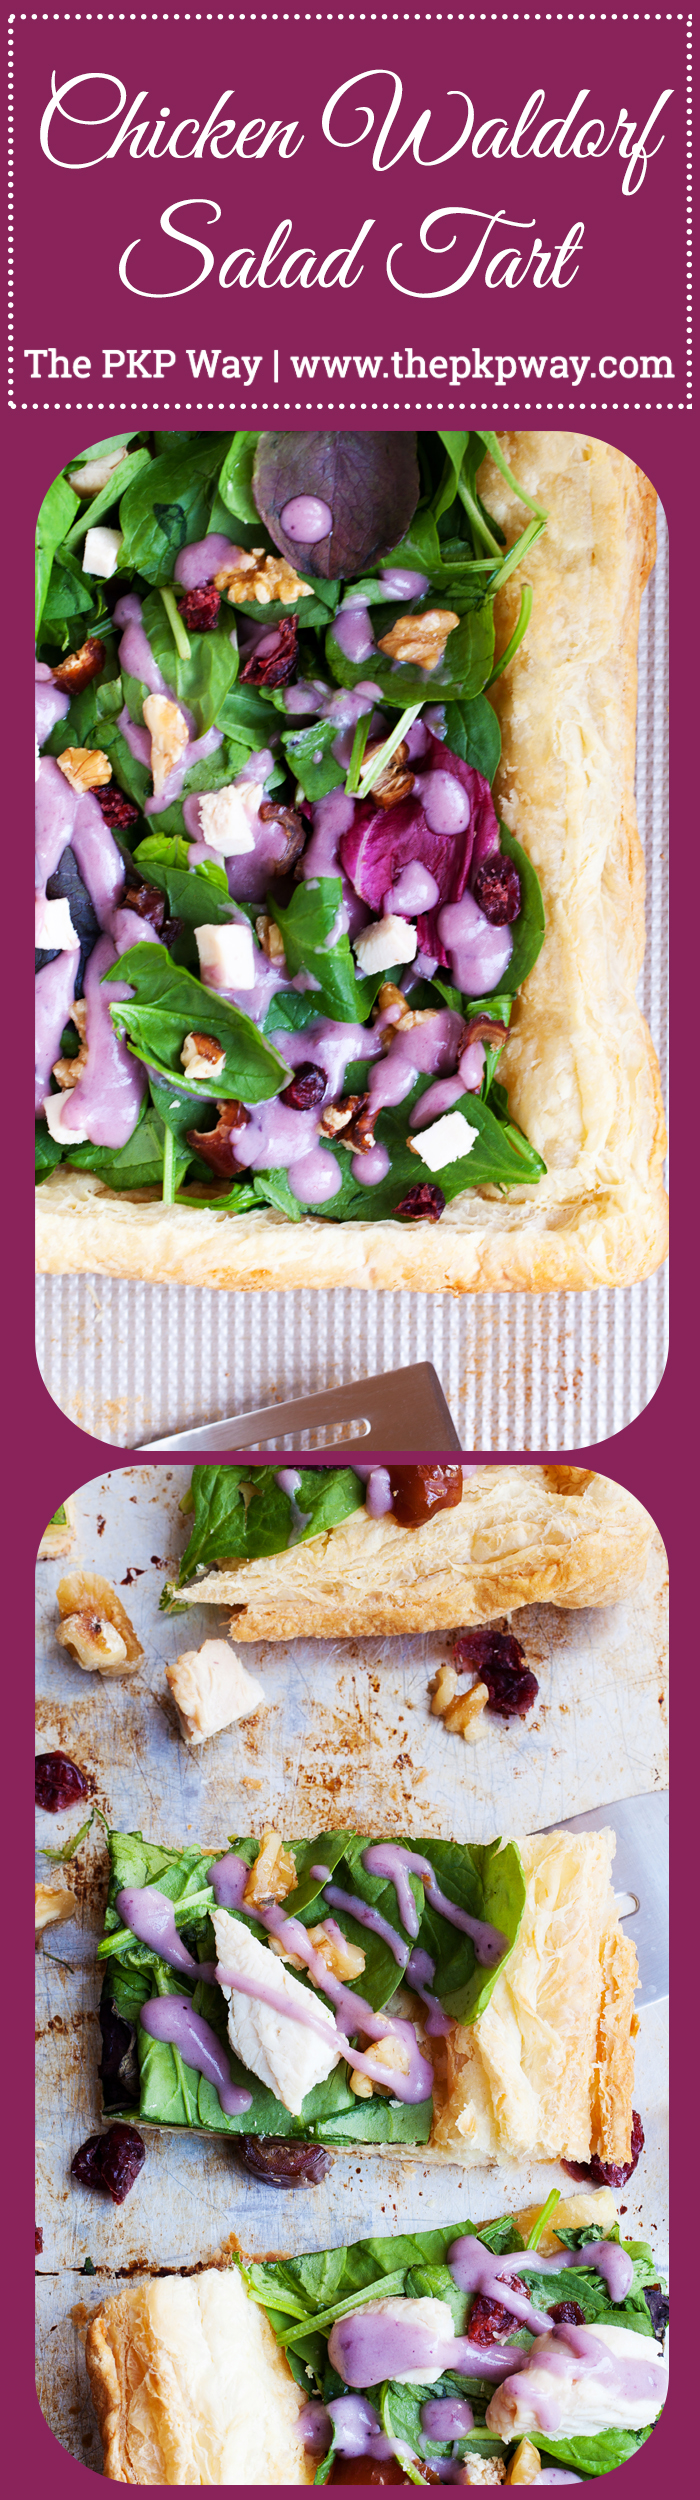 Puff pastry topped with fresh greens and a drizzle of blueberry lemon dressing make this Chicken Waldorf Salad Tart a delicious appetizer or light lunch option for all your holiday parties.